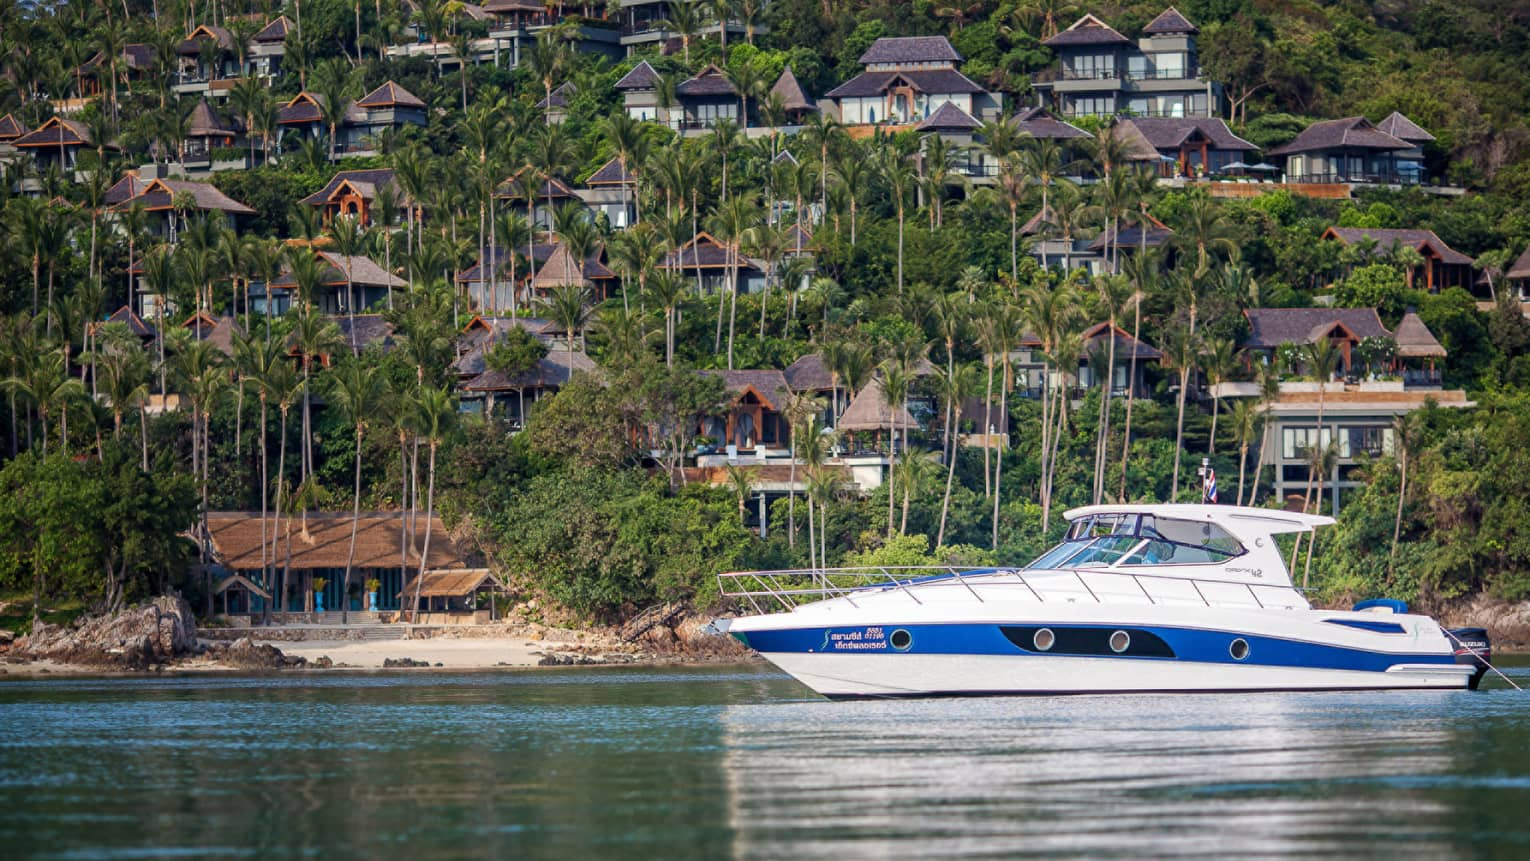 White and blue private fishing boat on ocean in front of mountain dotted with resort villas